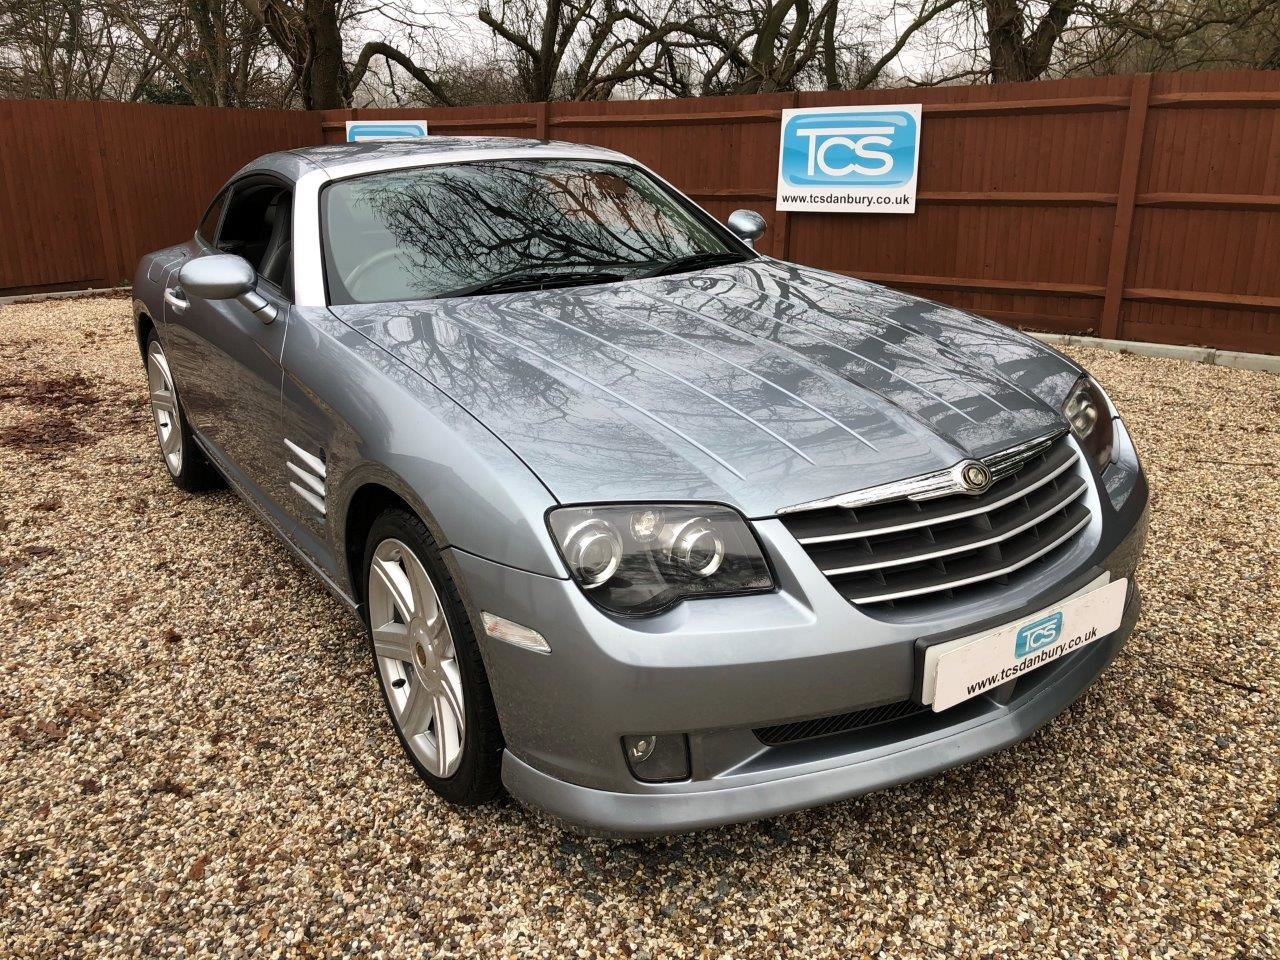 2003 Chrysler Crossfire 3.2i V6 Coupe 5-Speed Automatic SOLD (picture 1 of 12)